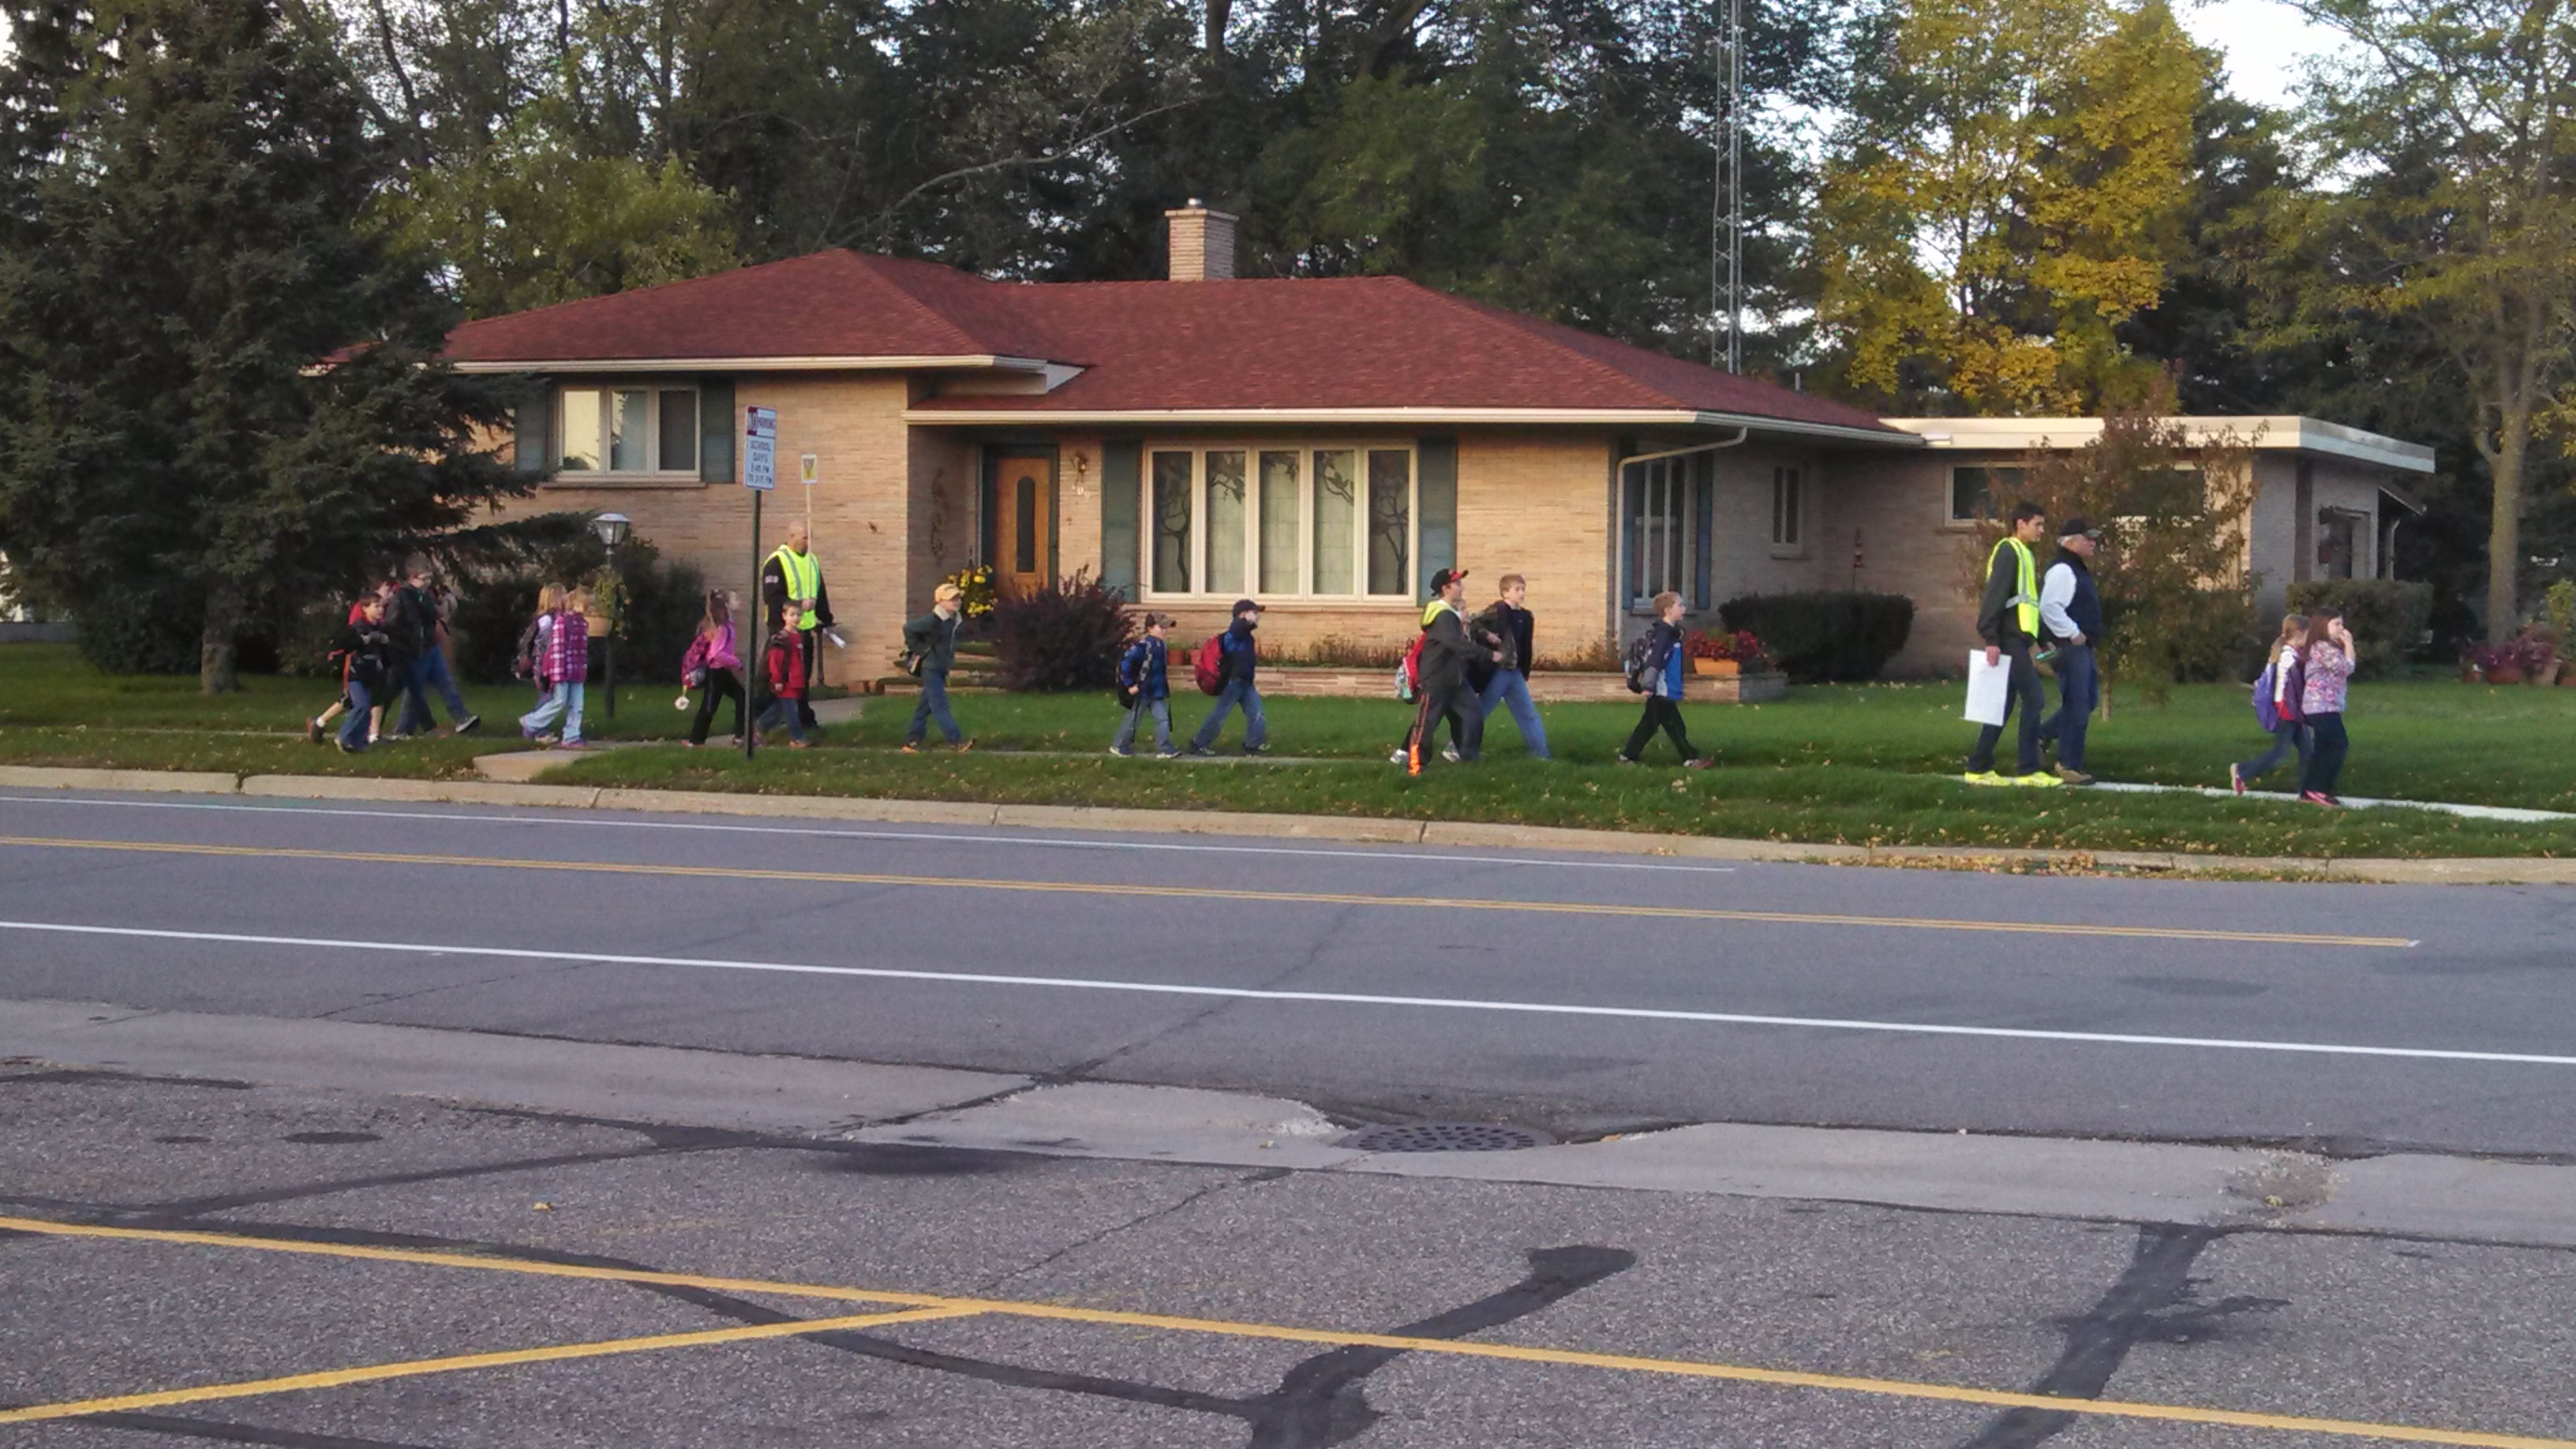 A group of children with adult crossing guards walking along a sidewalk